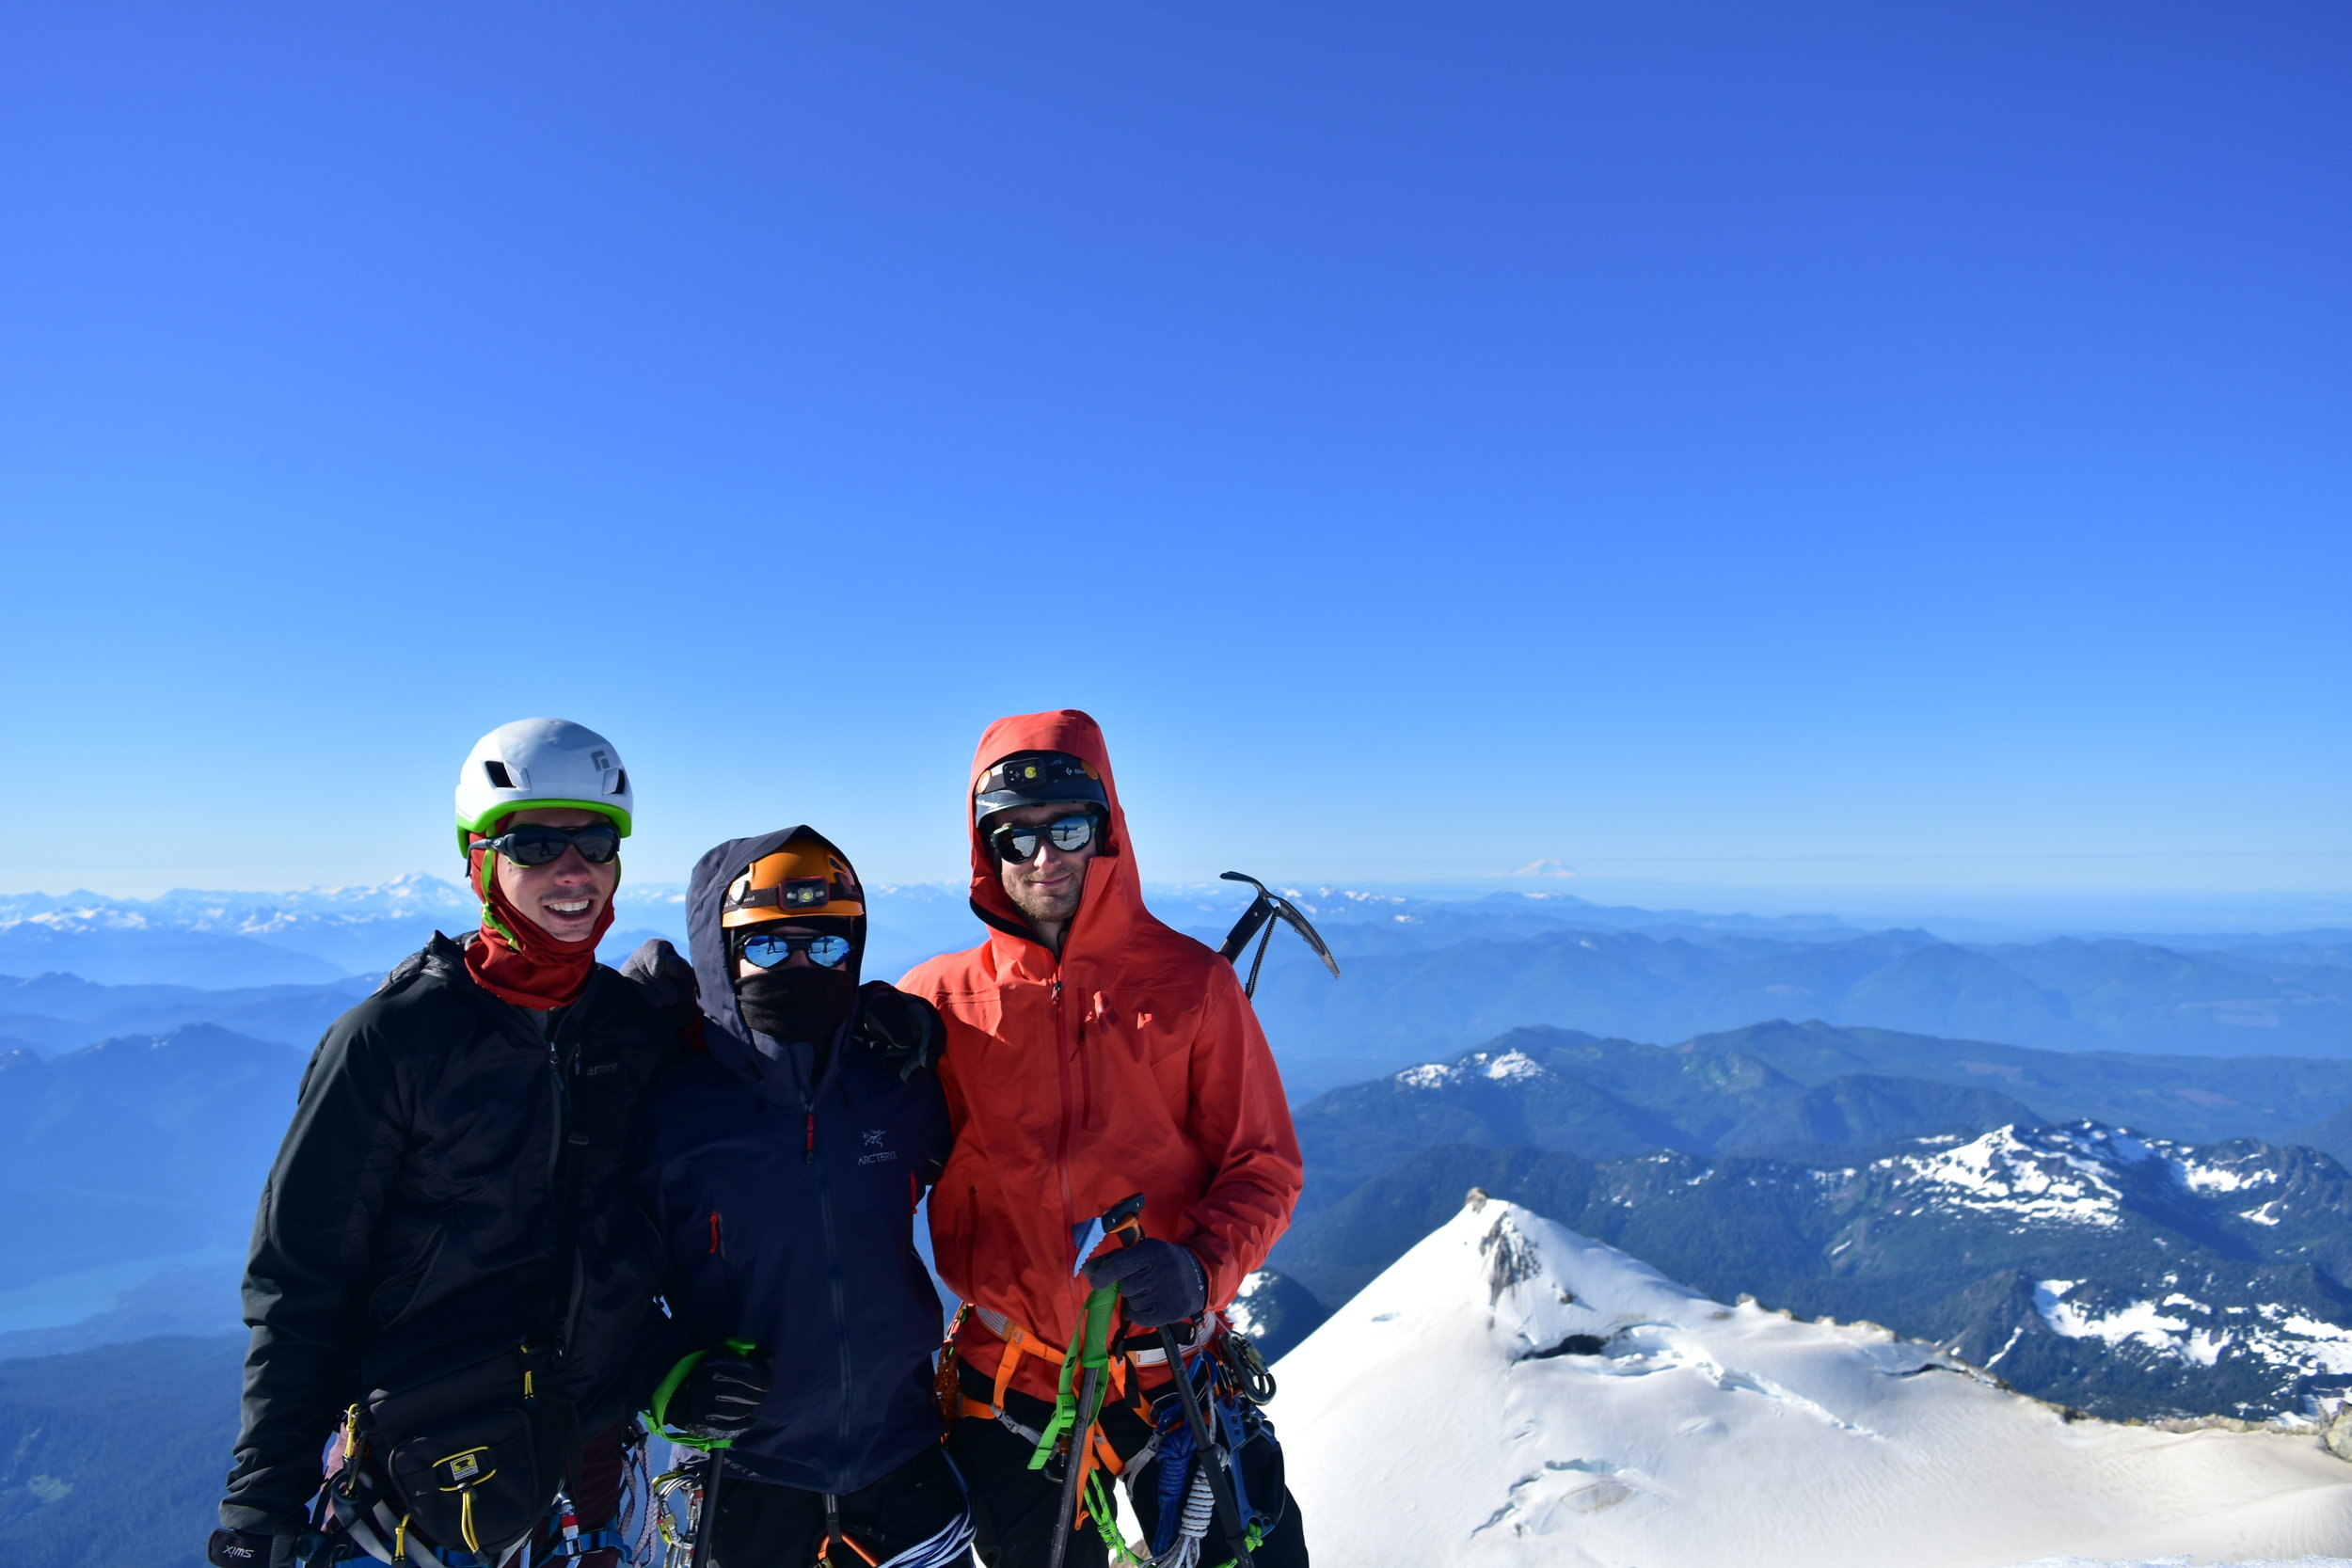 Mt. Baker summit; done with the 17,000+ ft of gain (including Rainier, which you can see in the background)